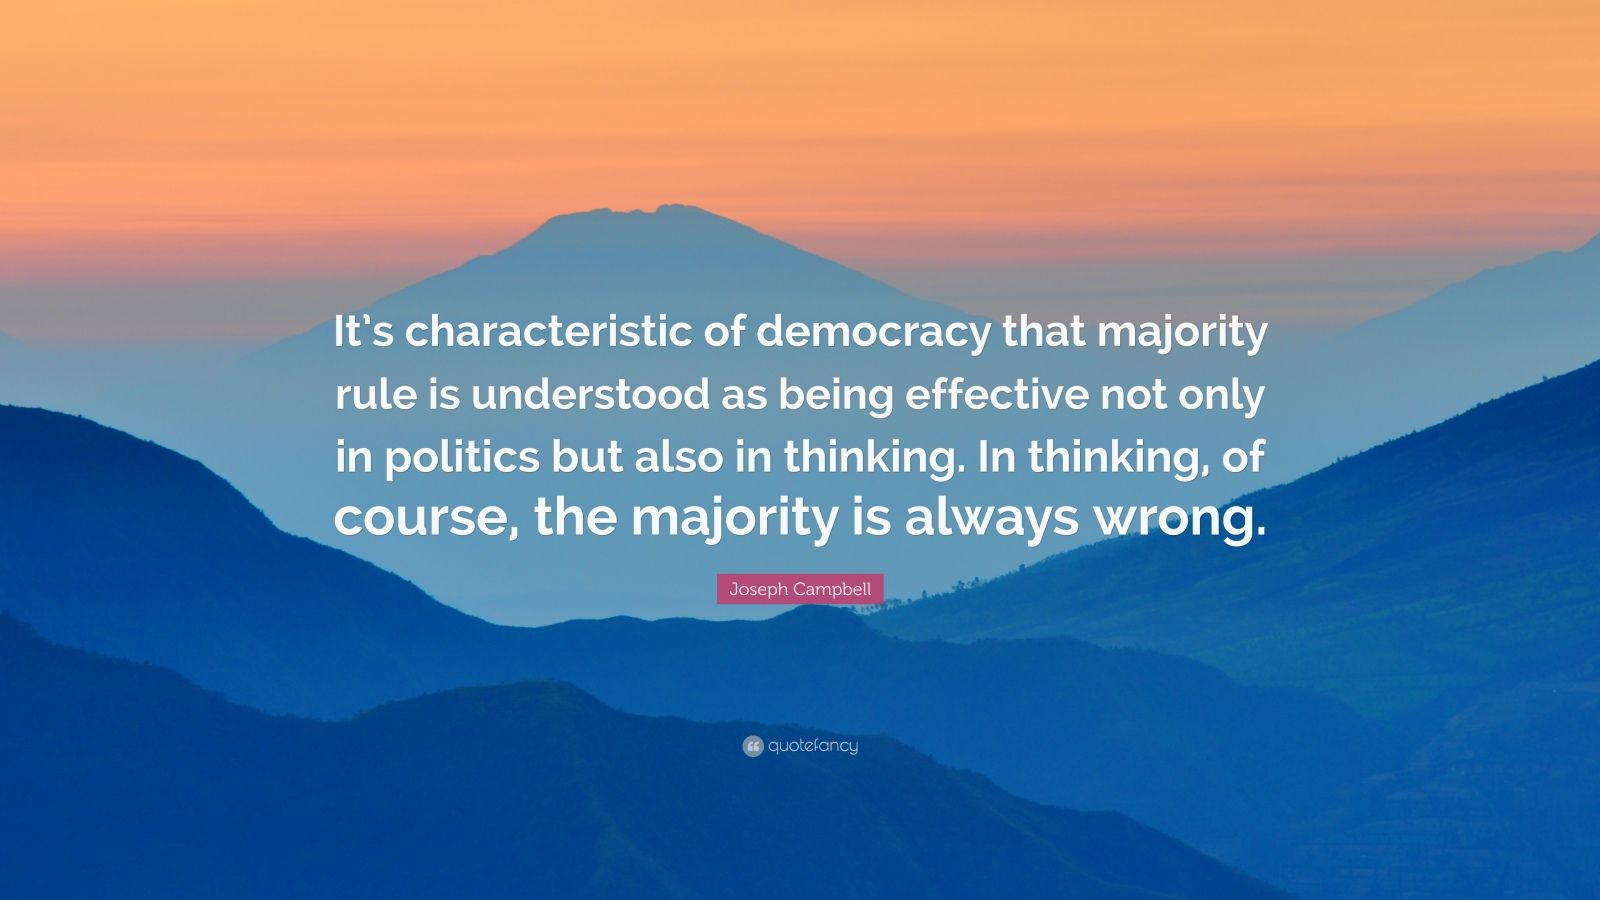 """Joseph Campbell Quote: """"It's characteristic of democracy that majority rule is understood as being effective not only in politics but also in thinking. In thinking, of course, the majority is always wrong."""""""